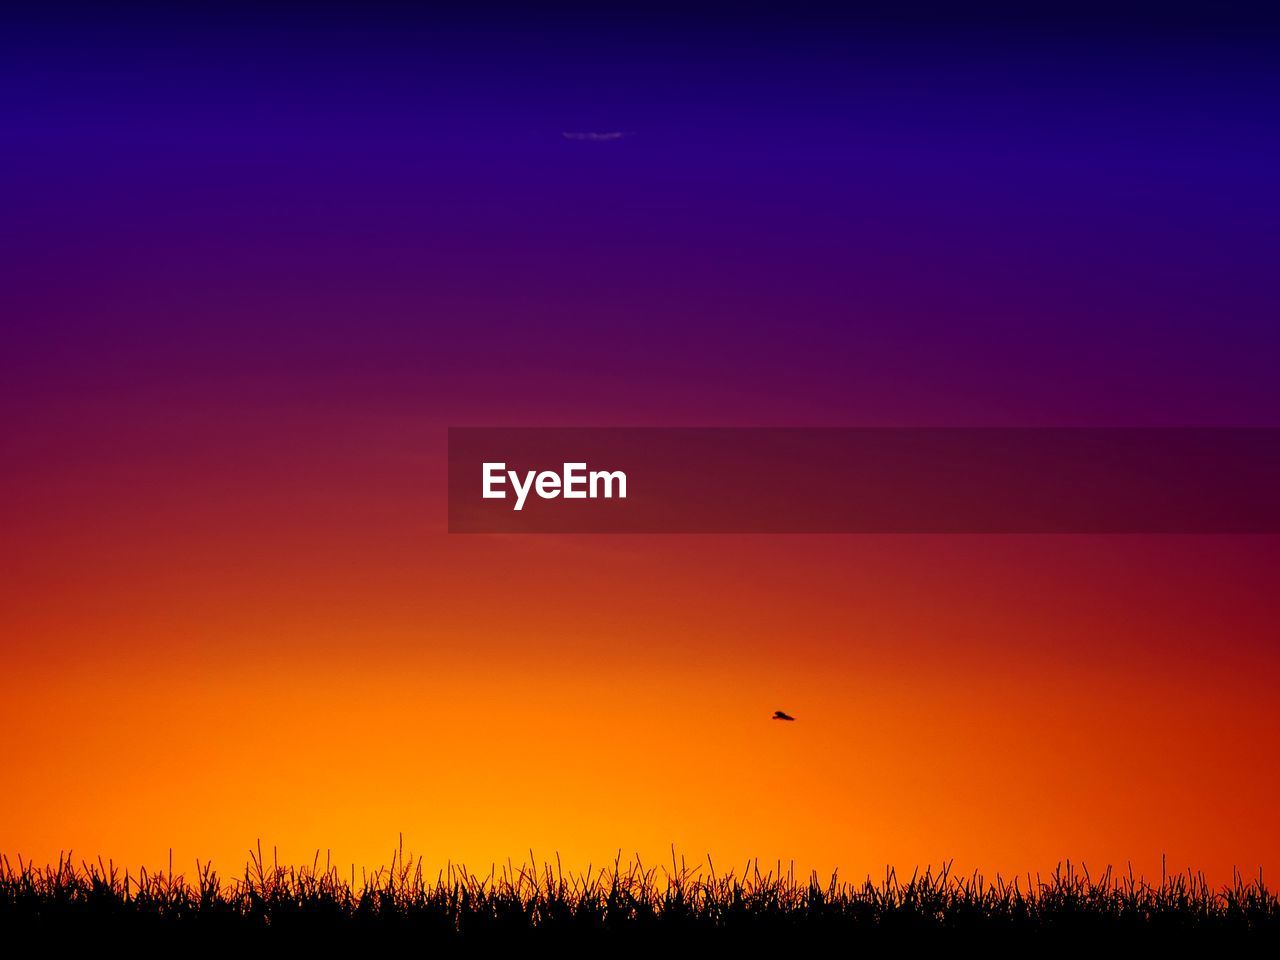 sunset, nature, beauty in nature, scenics, flying, tranquil scene, silhouette, orange color, outdoors, tranquility, bird, landscape, field, sky, animals in the wild, growth, animal wildlife, animal themes, one animal, no people, tree, rural scene, parachute, hot air balloon, clear sky, grass, paragliding, day, bird of prey